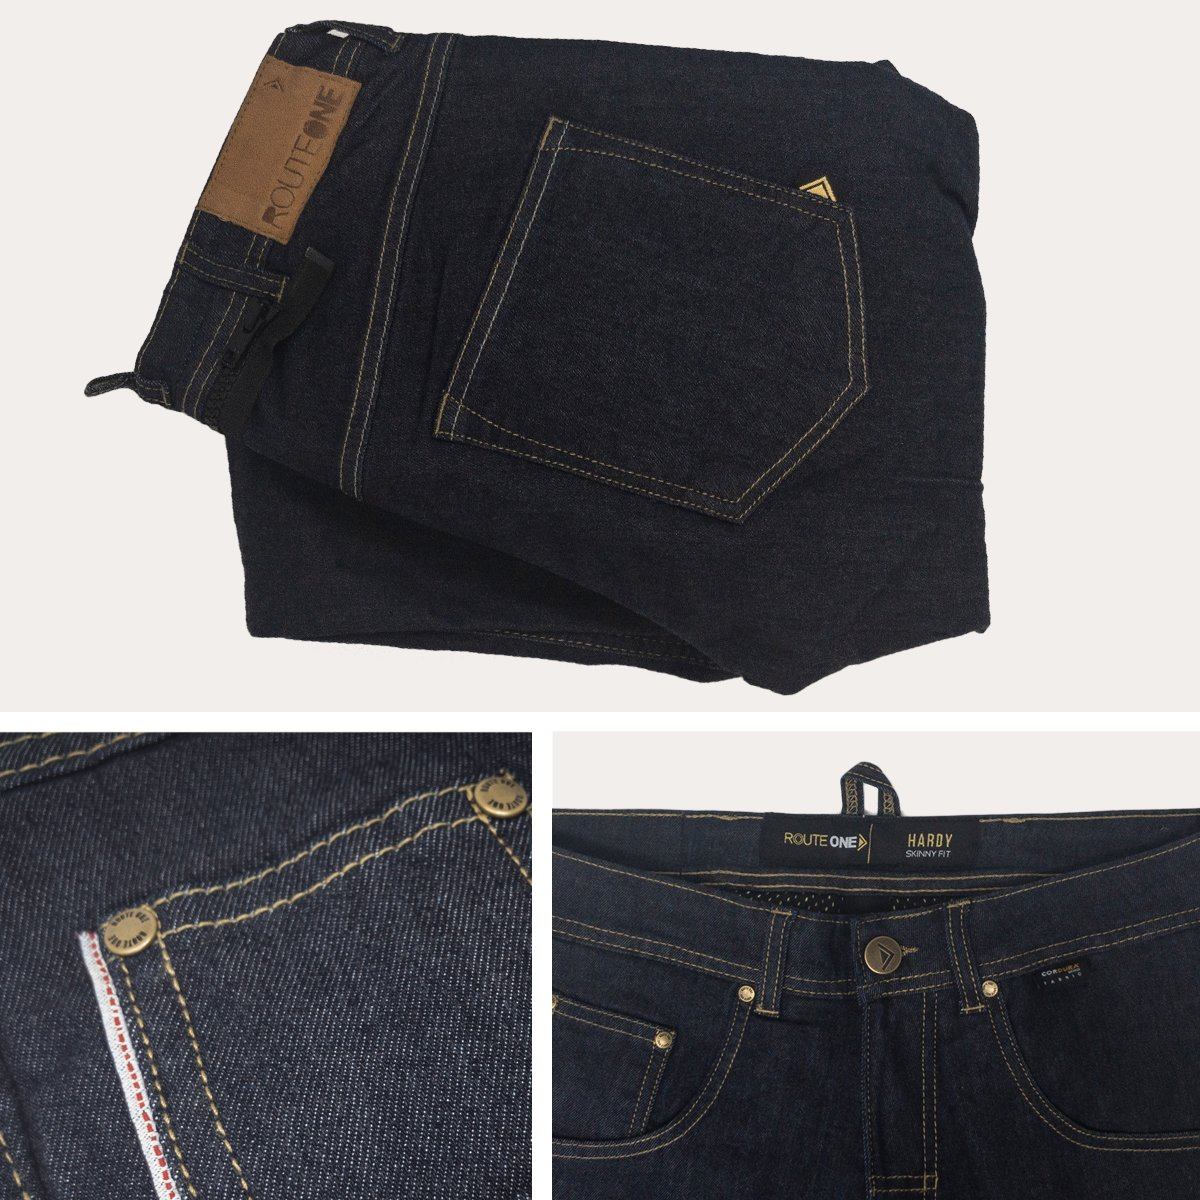 Route One Hardy Jeans